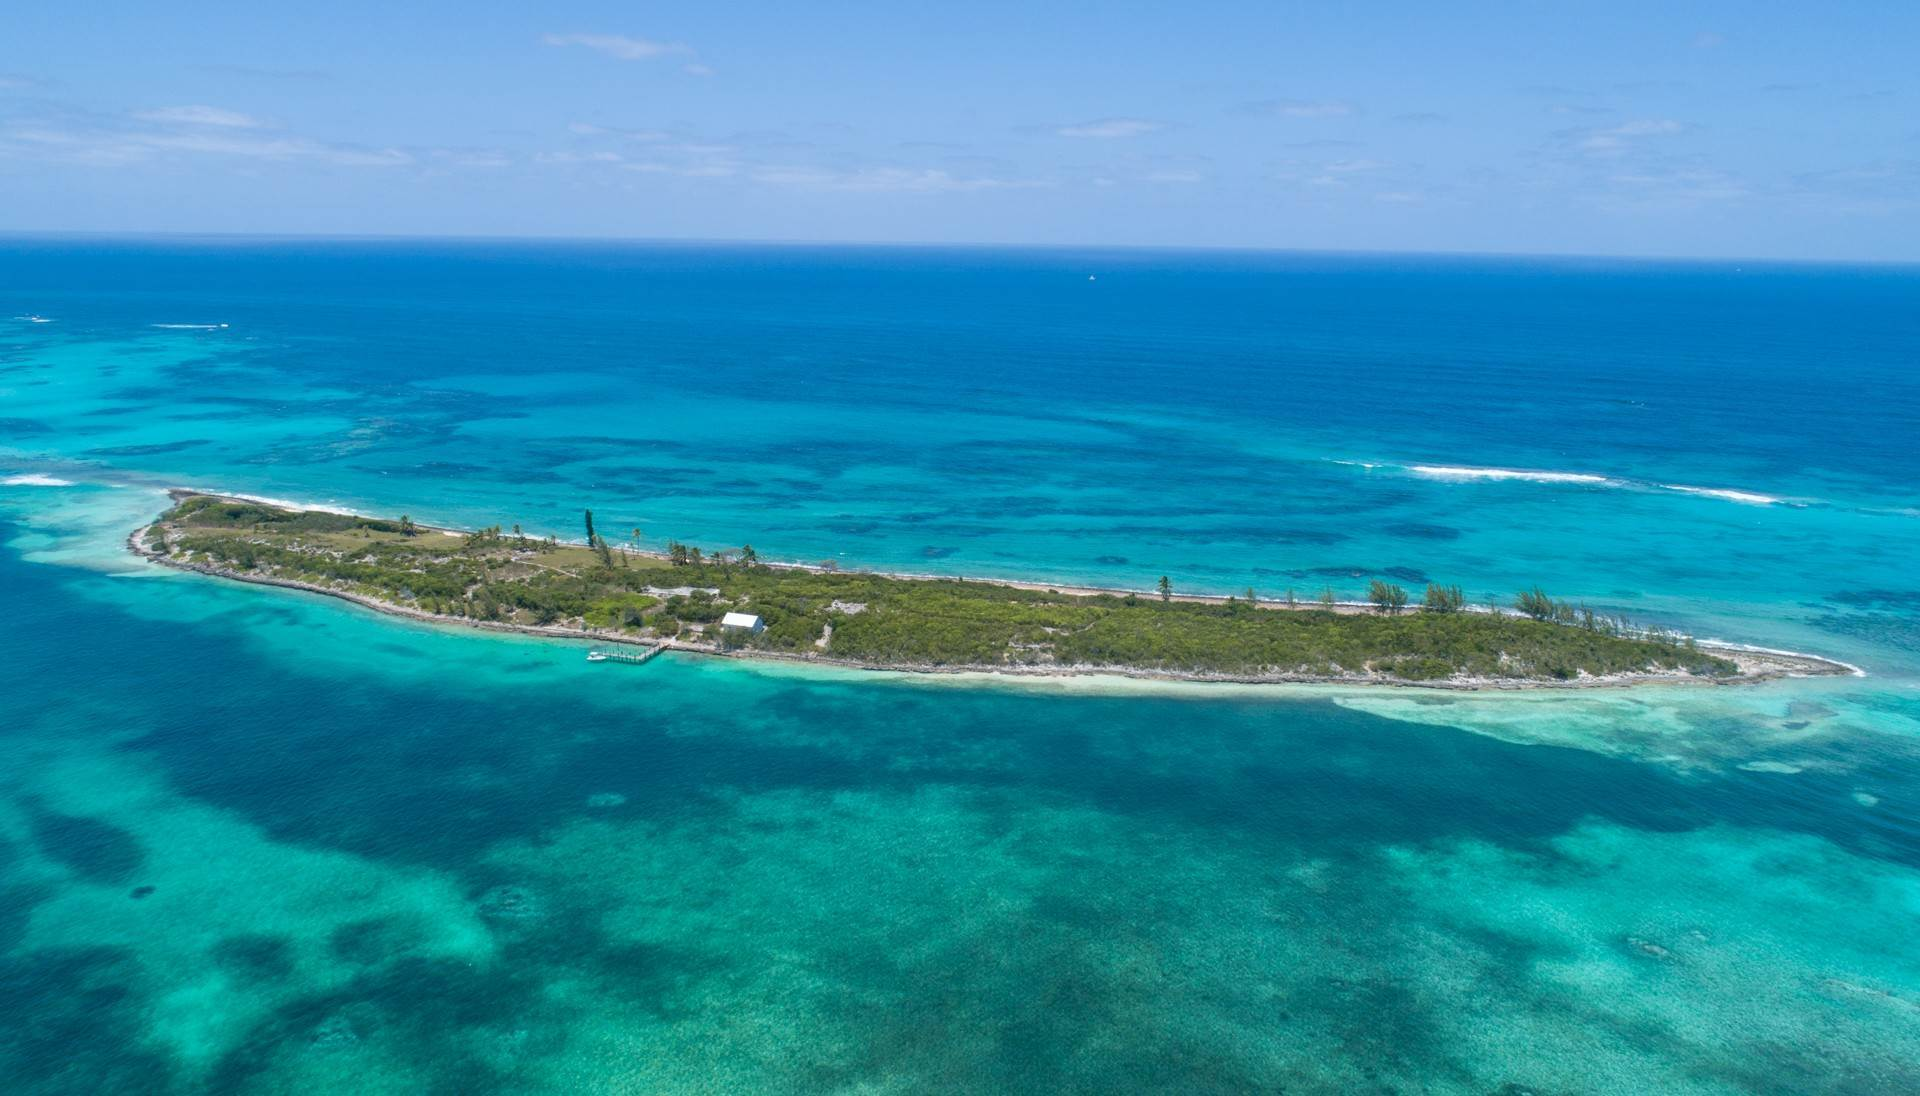 25. Private Islands for Sale at Pierre Island, A Perfect Private Retreat Island Near Harbour Island - MLS 40806 Harbour Island, Eleuthera, Bahamas